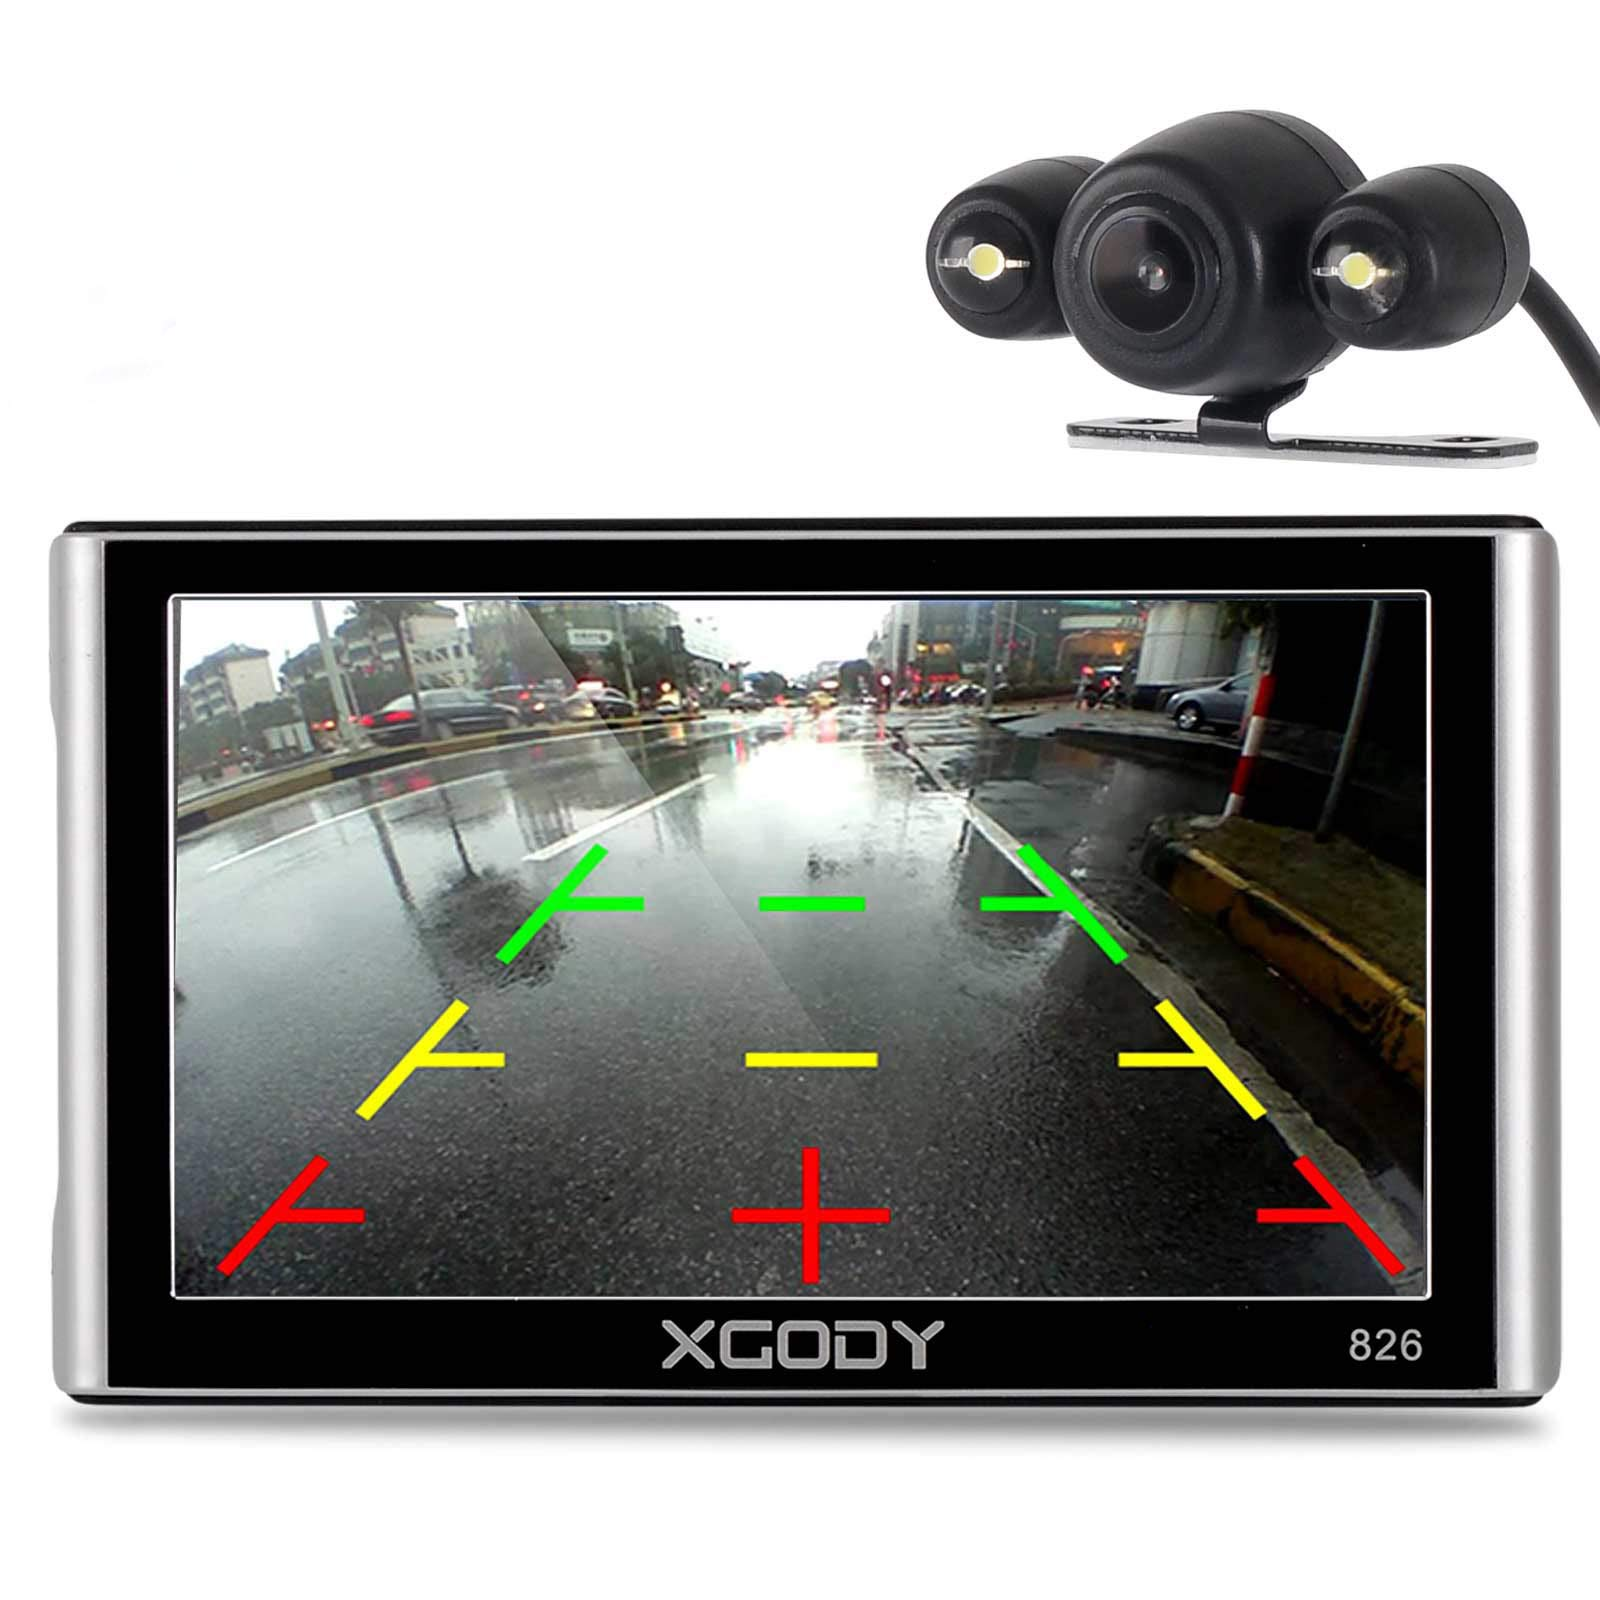 Xgody 826BT Car GPS Navigation with 6 Meters Backup Camera 7'' 256MB/8GB Sunshade Capacitive Touch Screen Trucking GPS NAV Lifetime Map Updates Speed Limit Displays Spoken Turn-by-Turn Directions by XGODY